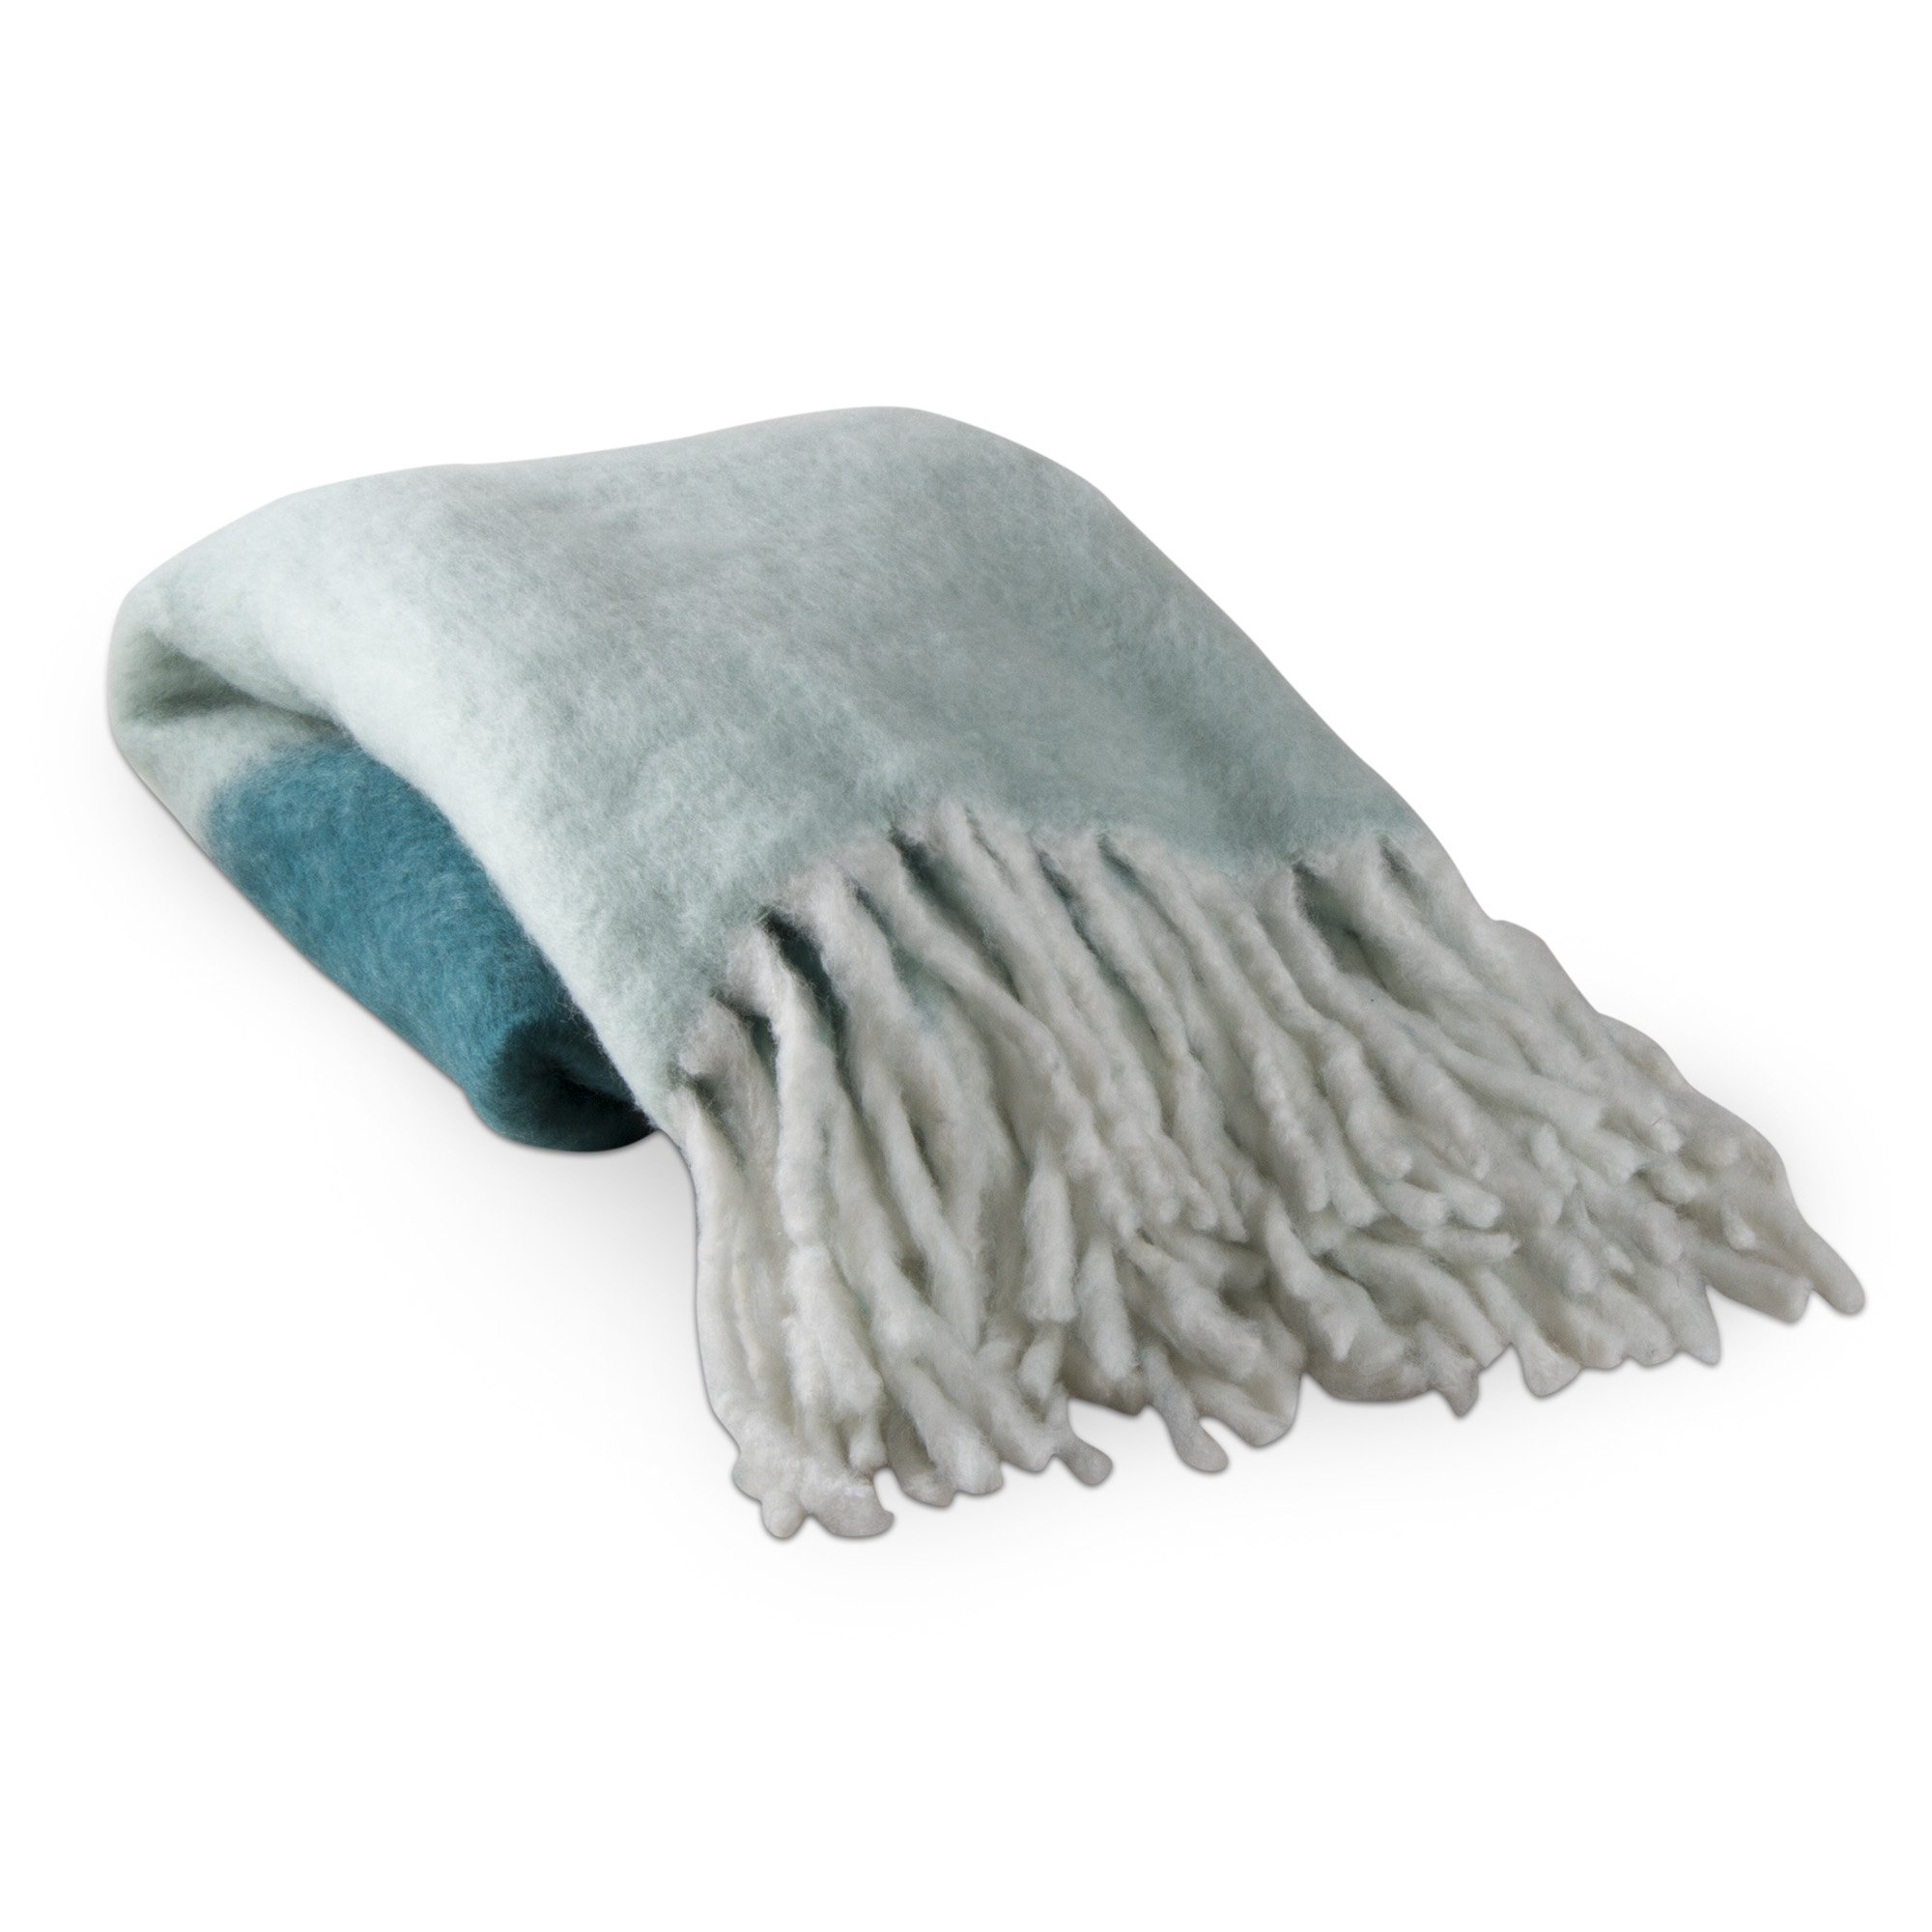 tag - Mohair Ombre Throw Blanket, Handwoven Warmth & Comfort, Teal